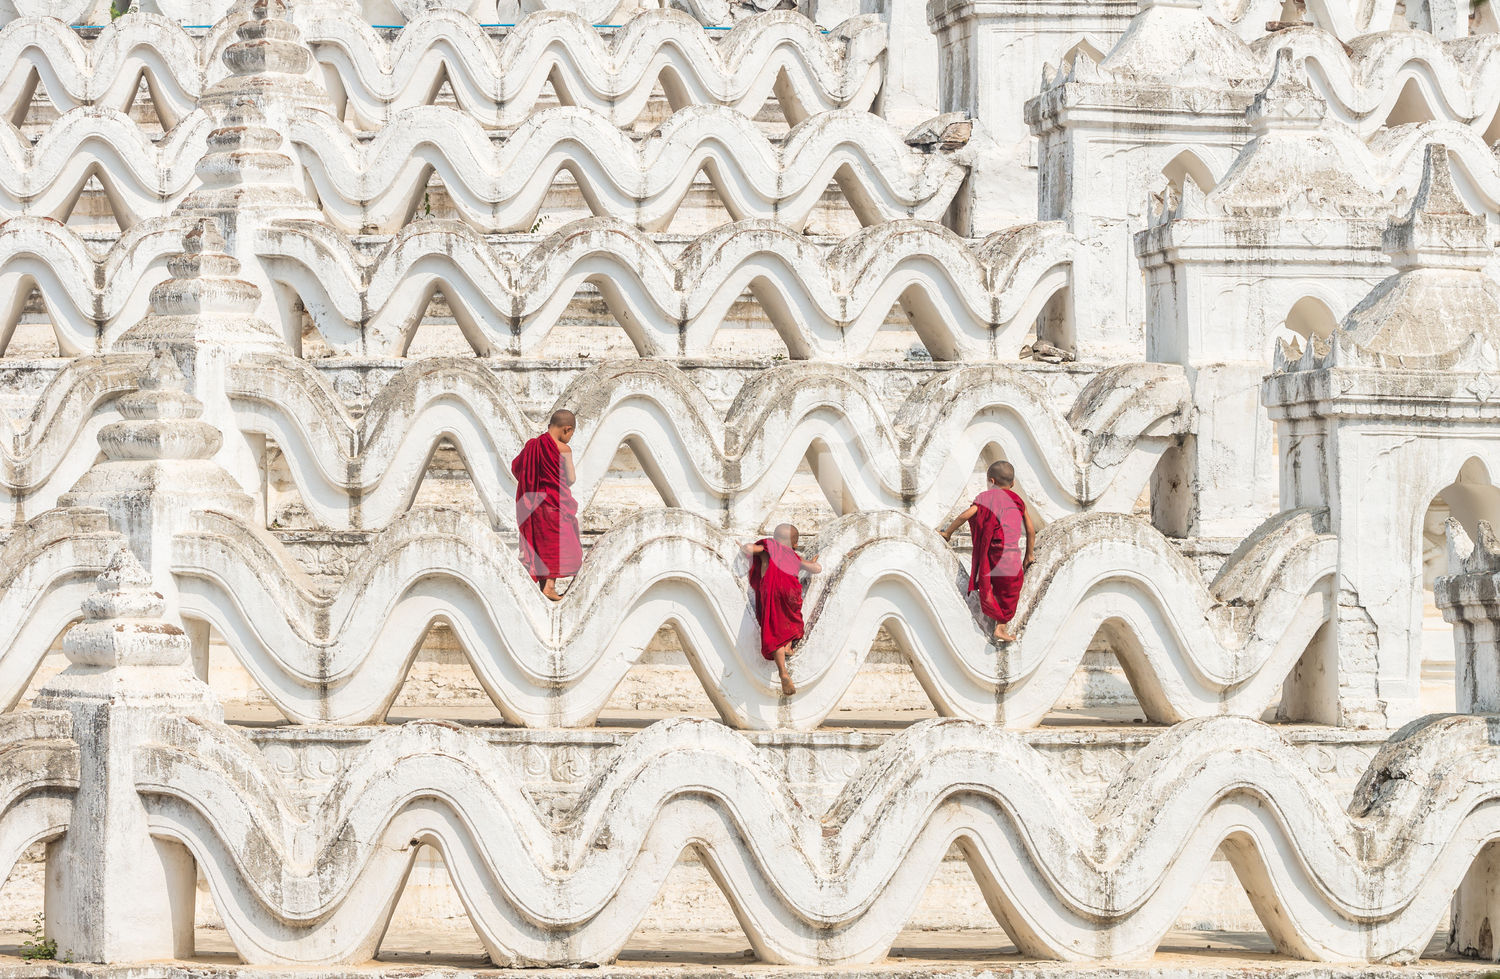 Back view of three monks on Mya Thein Tan Pagoda